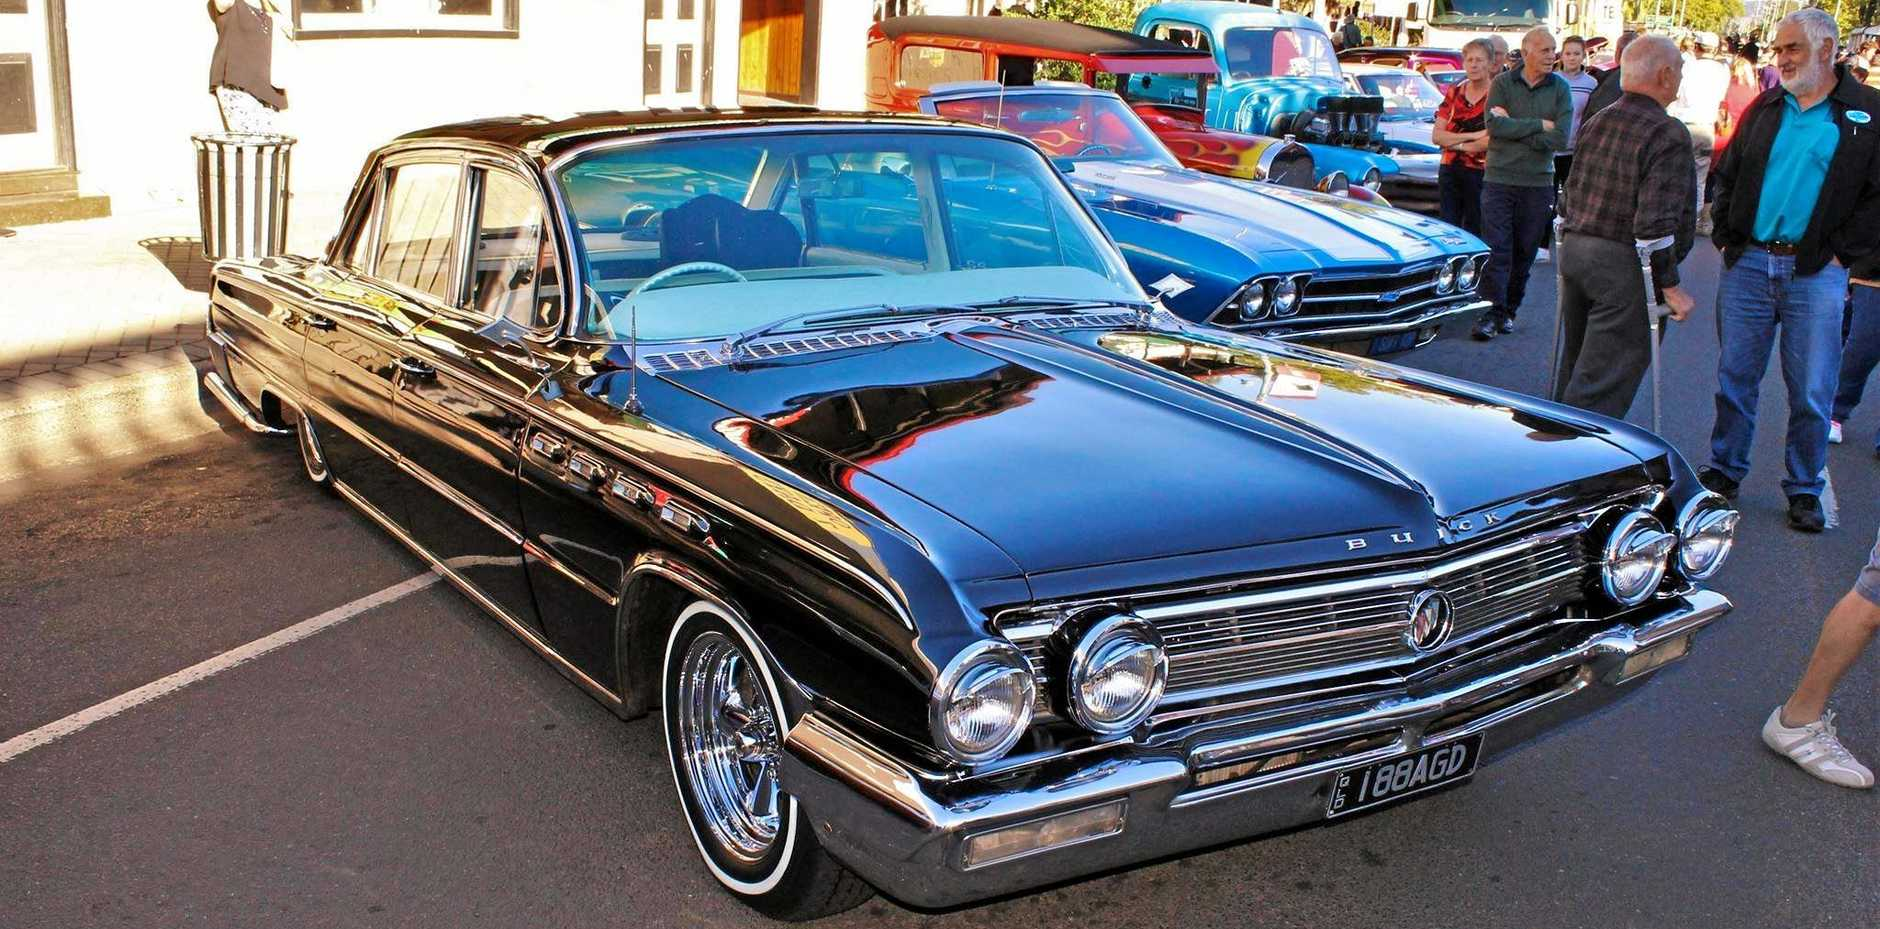 The Laidley Chrome and Clutter Retro Festival will be held from June 28-30 at the Laidley Showgrounds.